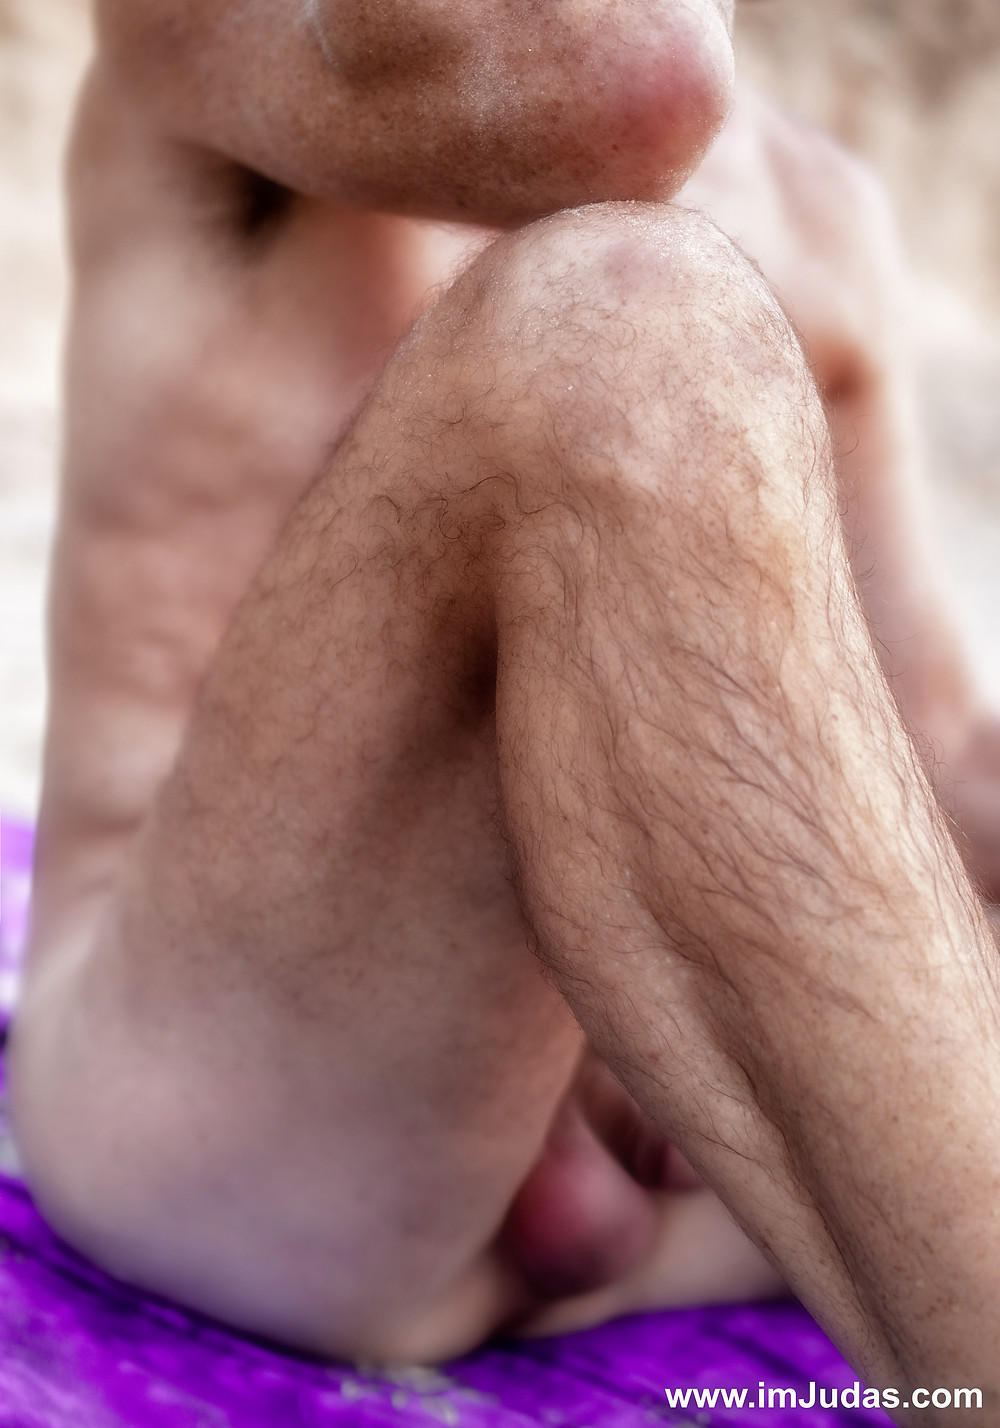 cock balls man hairy naked nude